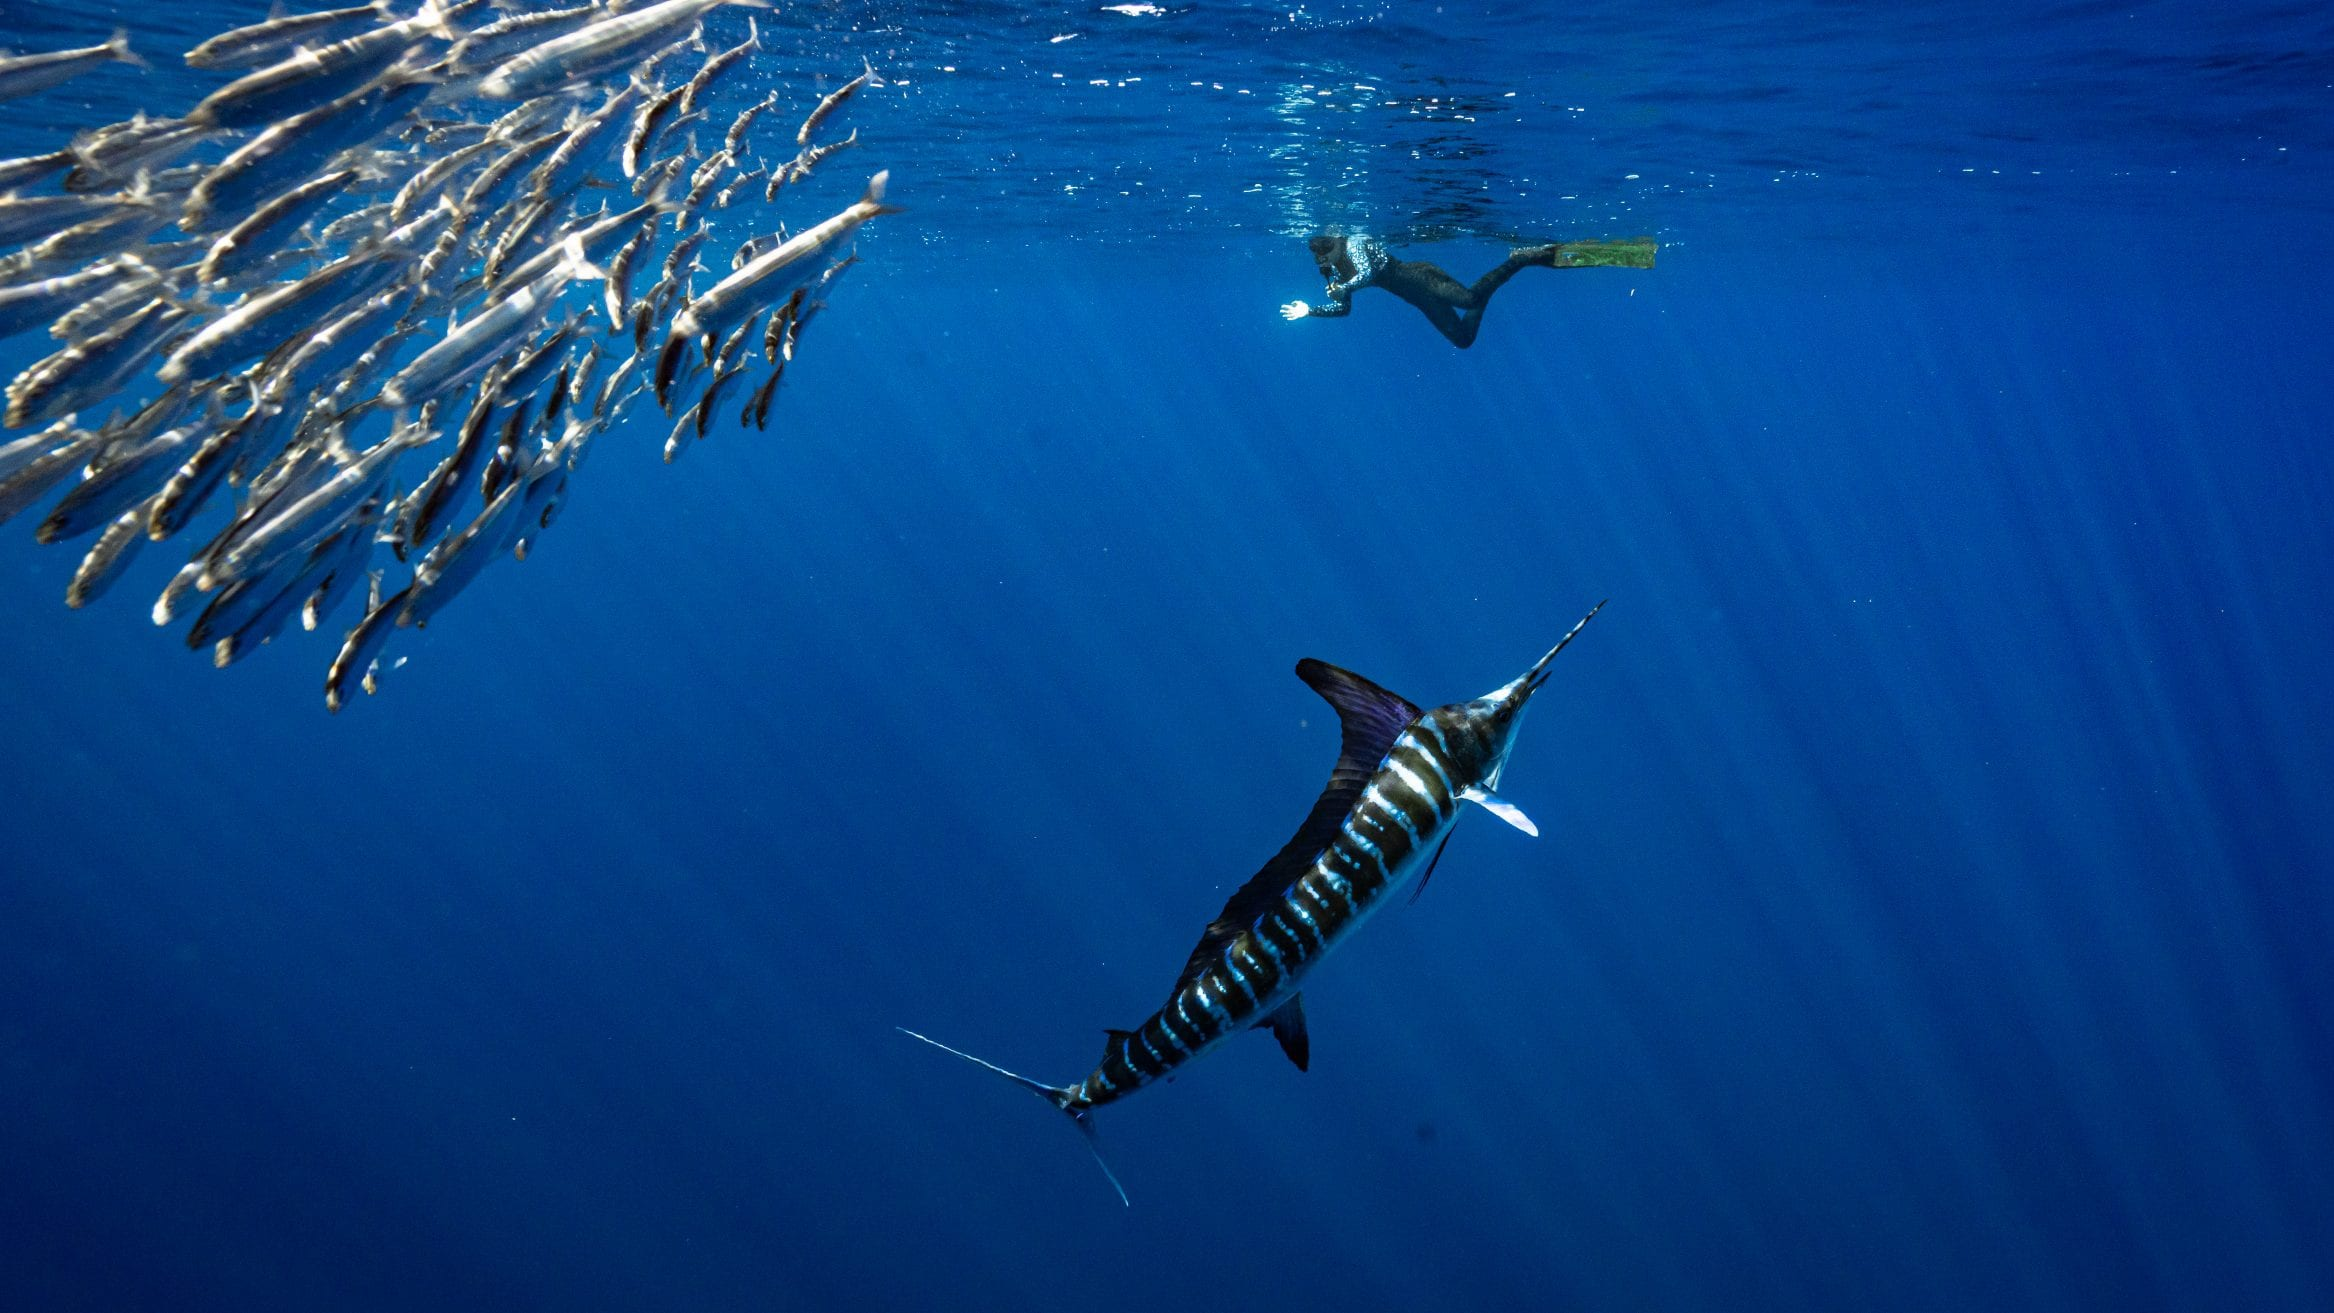 Chasing lightning: The striped marlin of Baja California - Oceanographic